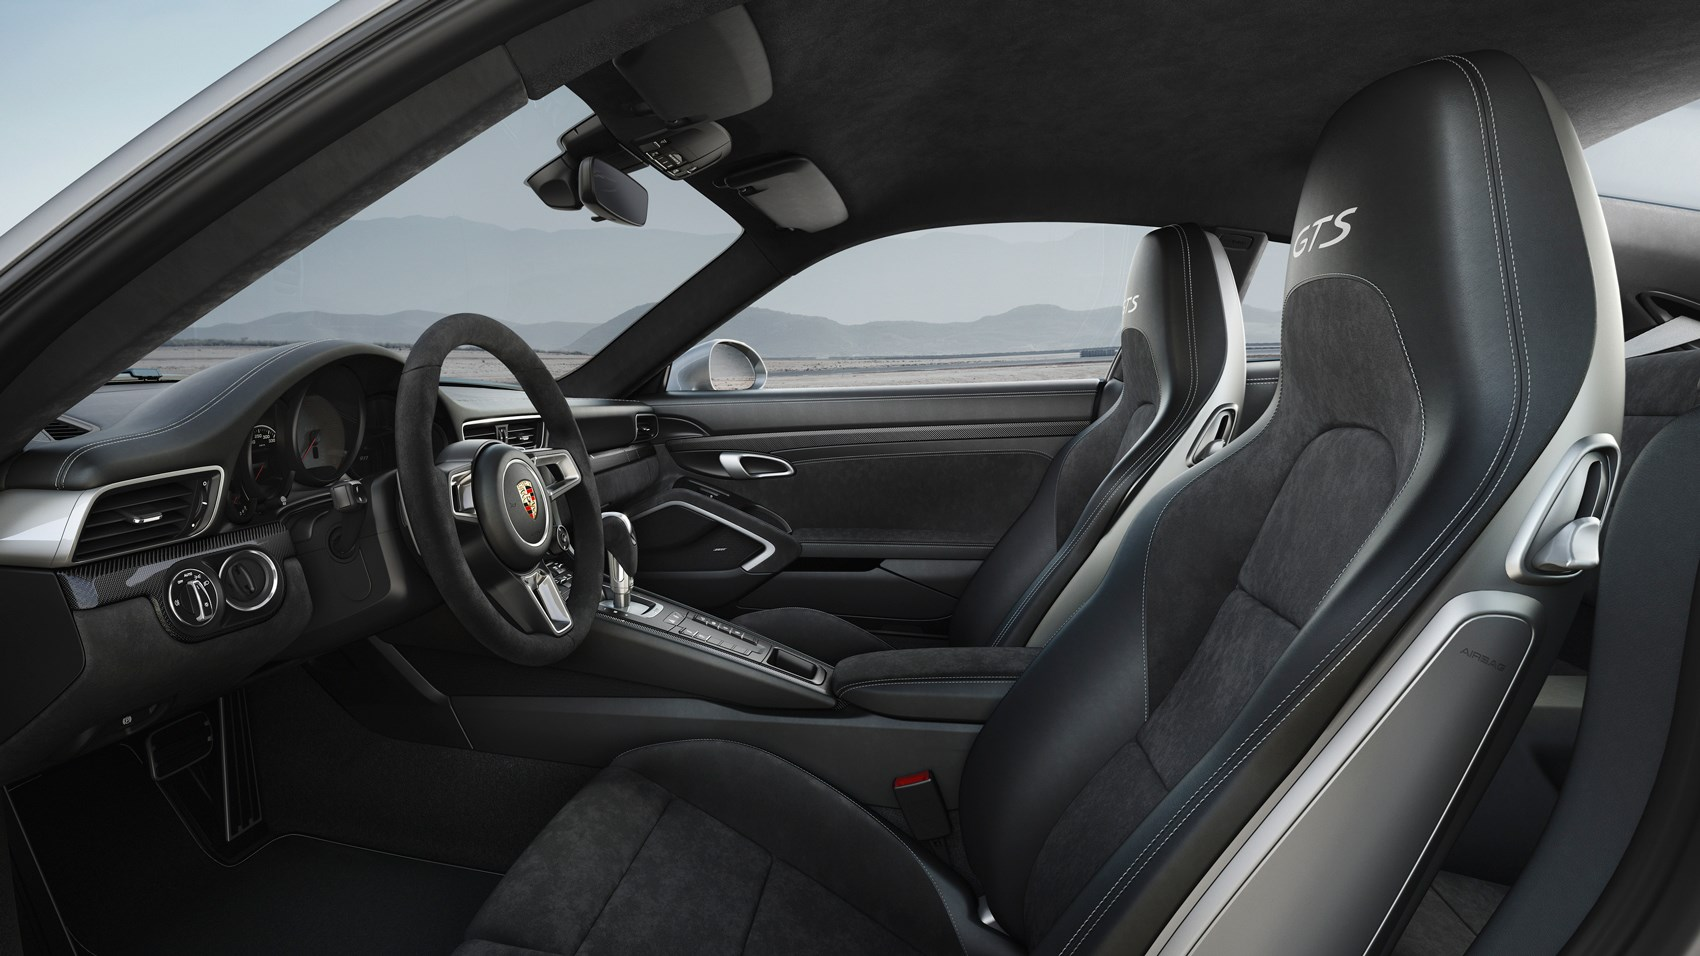 Porsche 911 Carrera 4 Gts 2018 Review All The Trimmings Car 991 Engine Diagram